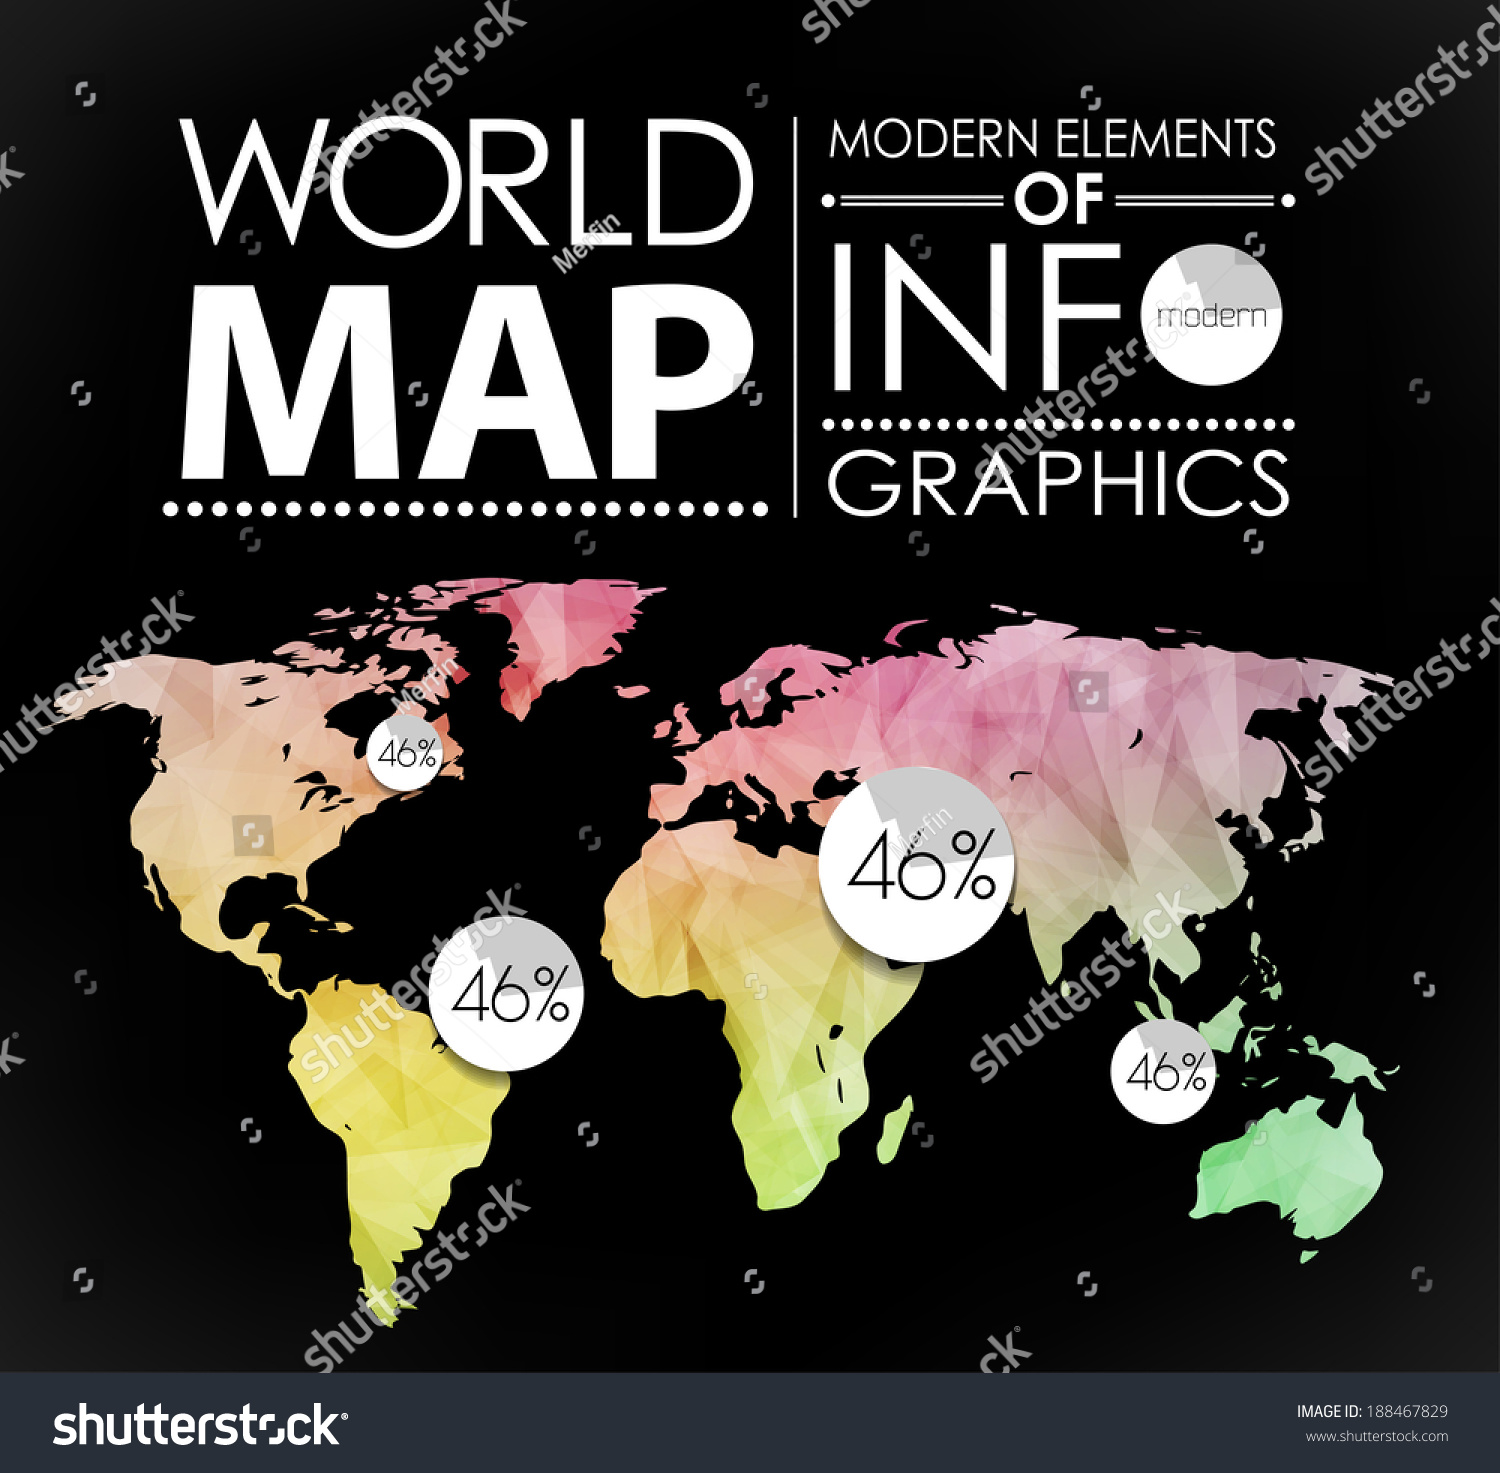 Polygonal world map card modern geometrical stock vector 2018 polygonal world map card modern geometrical elements of info graphics world map typography gumiabroncs Image collections